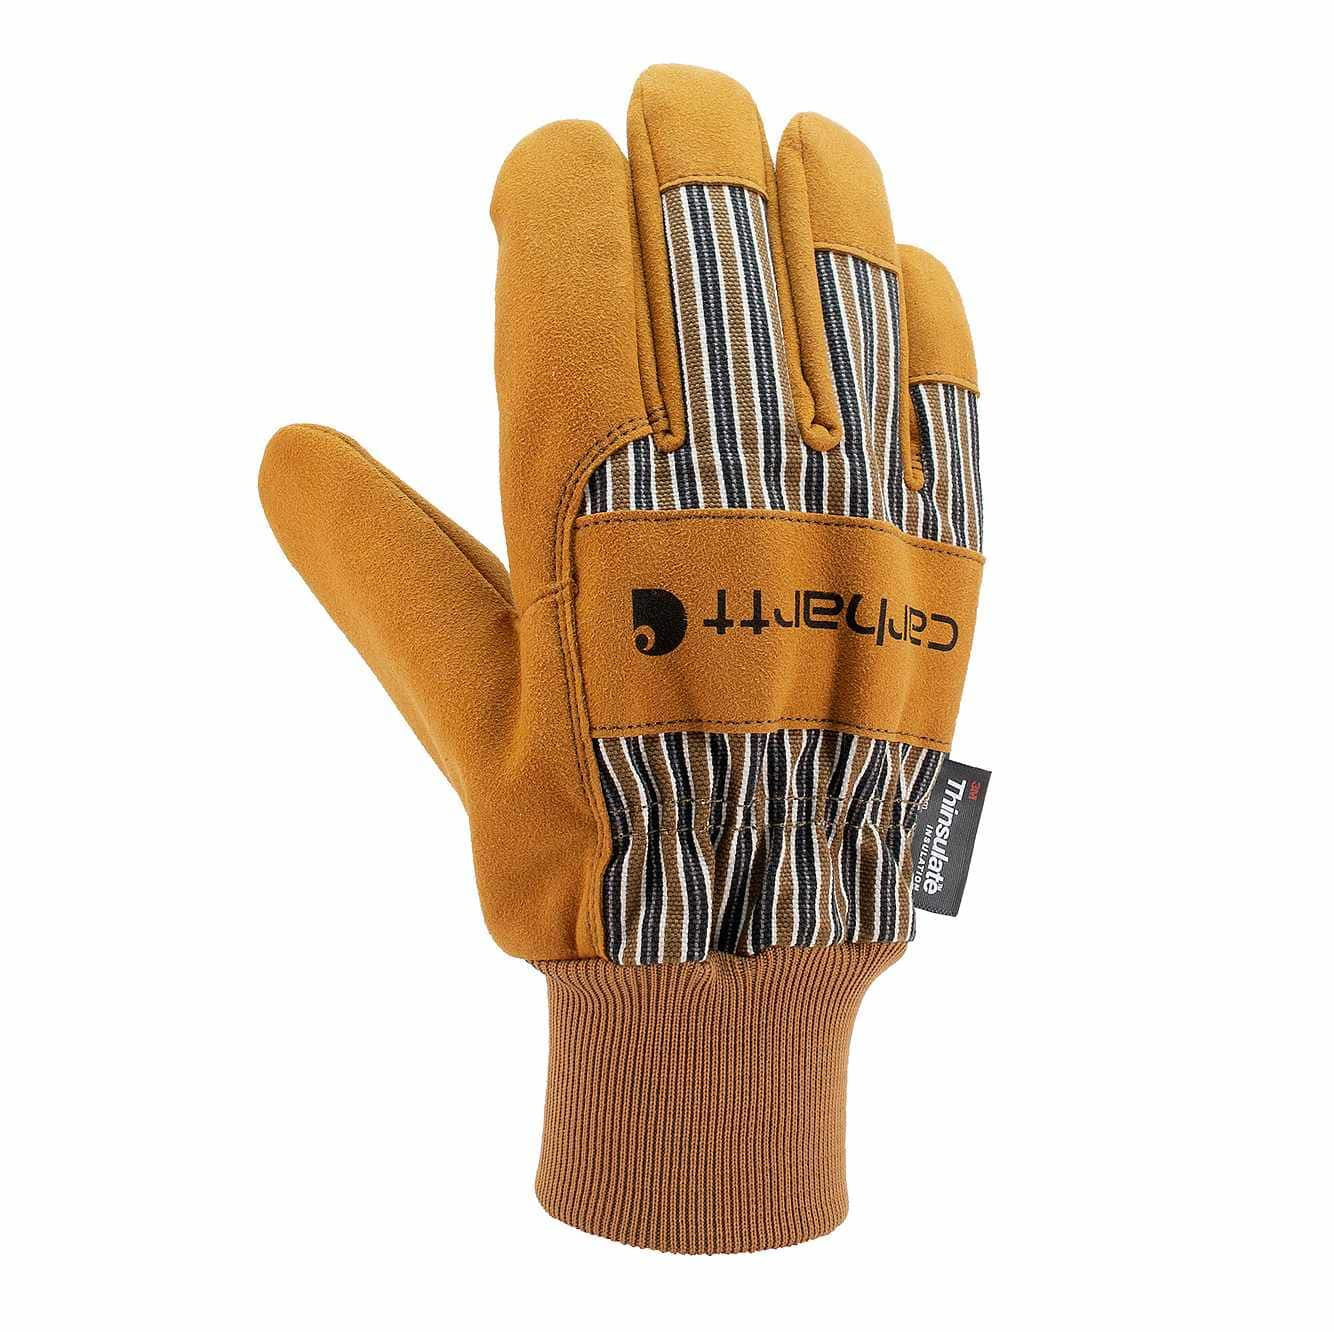 Picture of Insulated Synthetic Suede Knit Cuff Work Glove in Brown